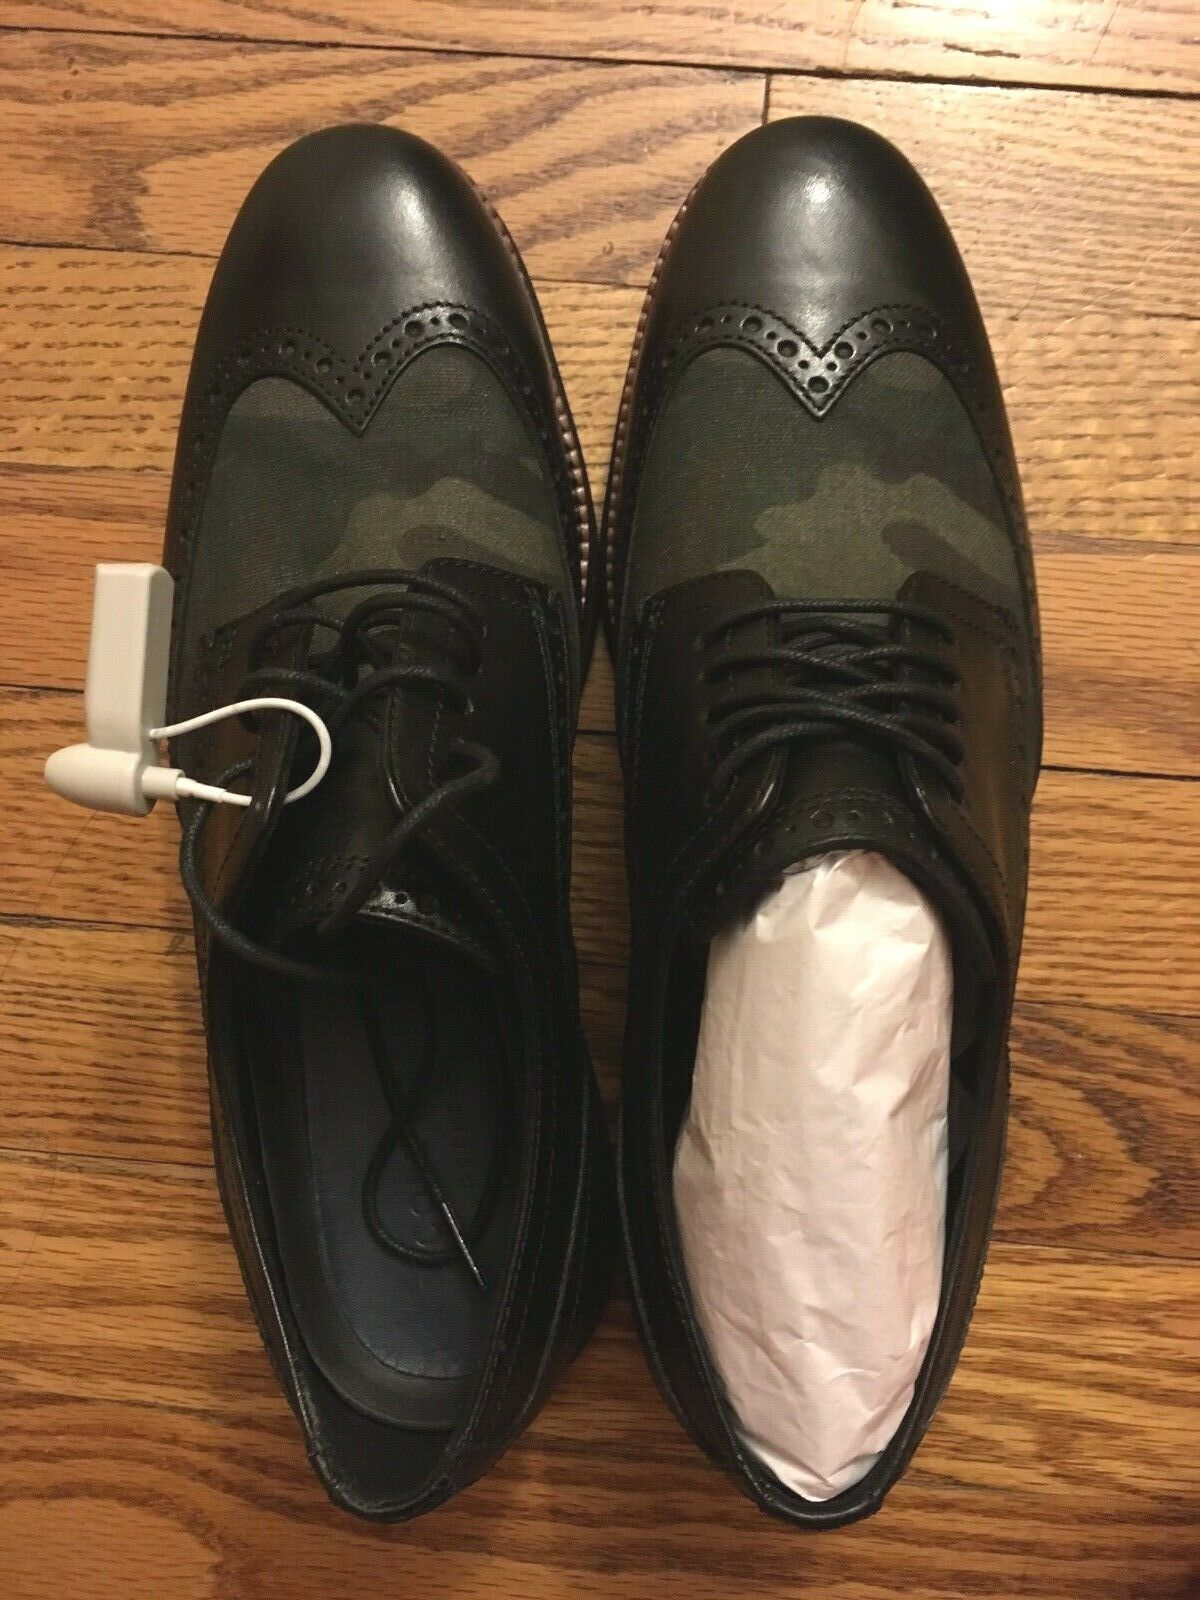 Brand New in Box Cole Haan Original Grand Shortwing Oxfords US Men Size 9.5